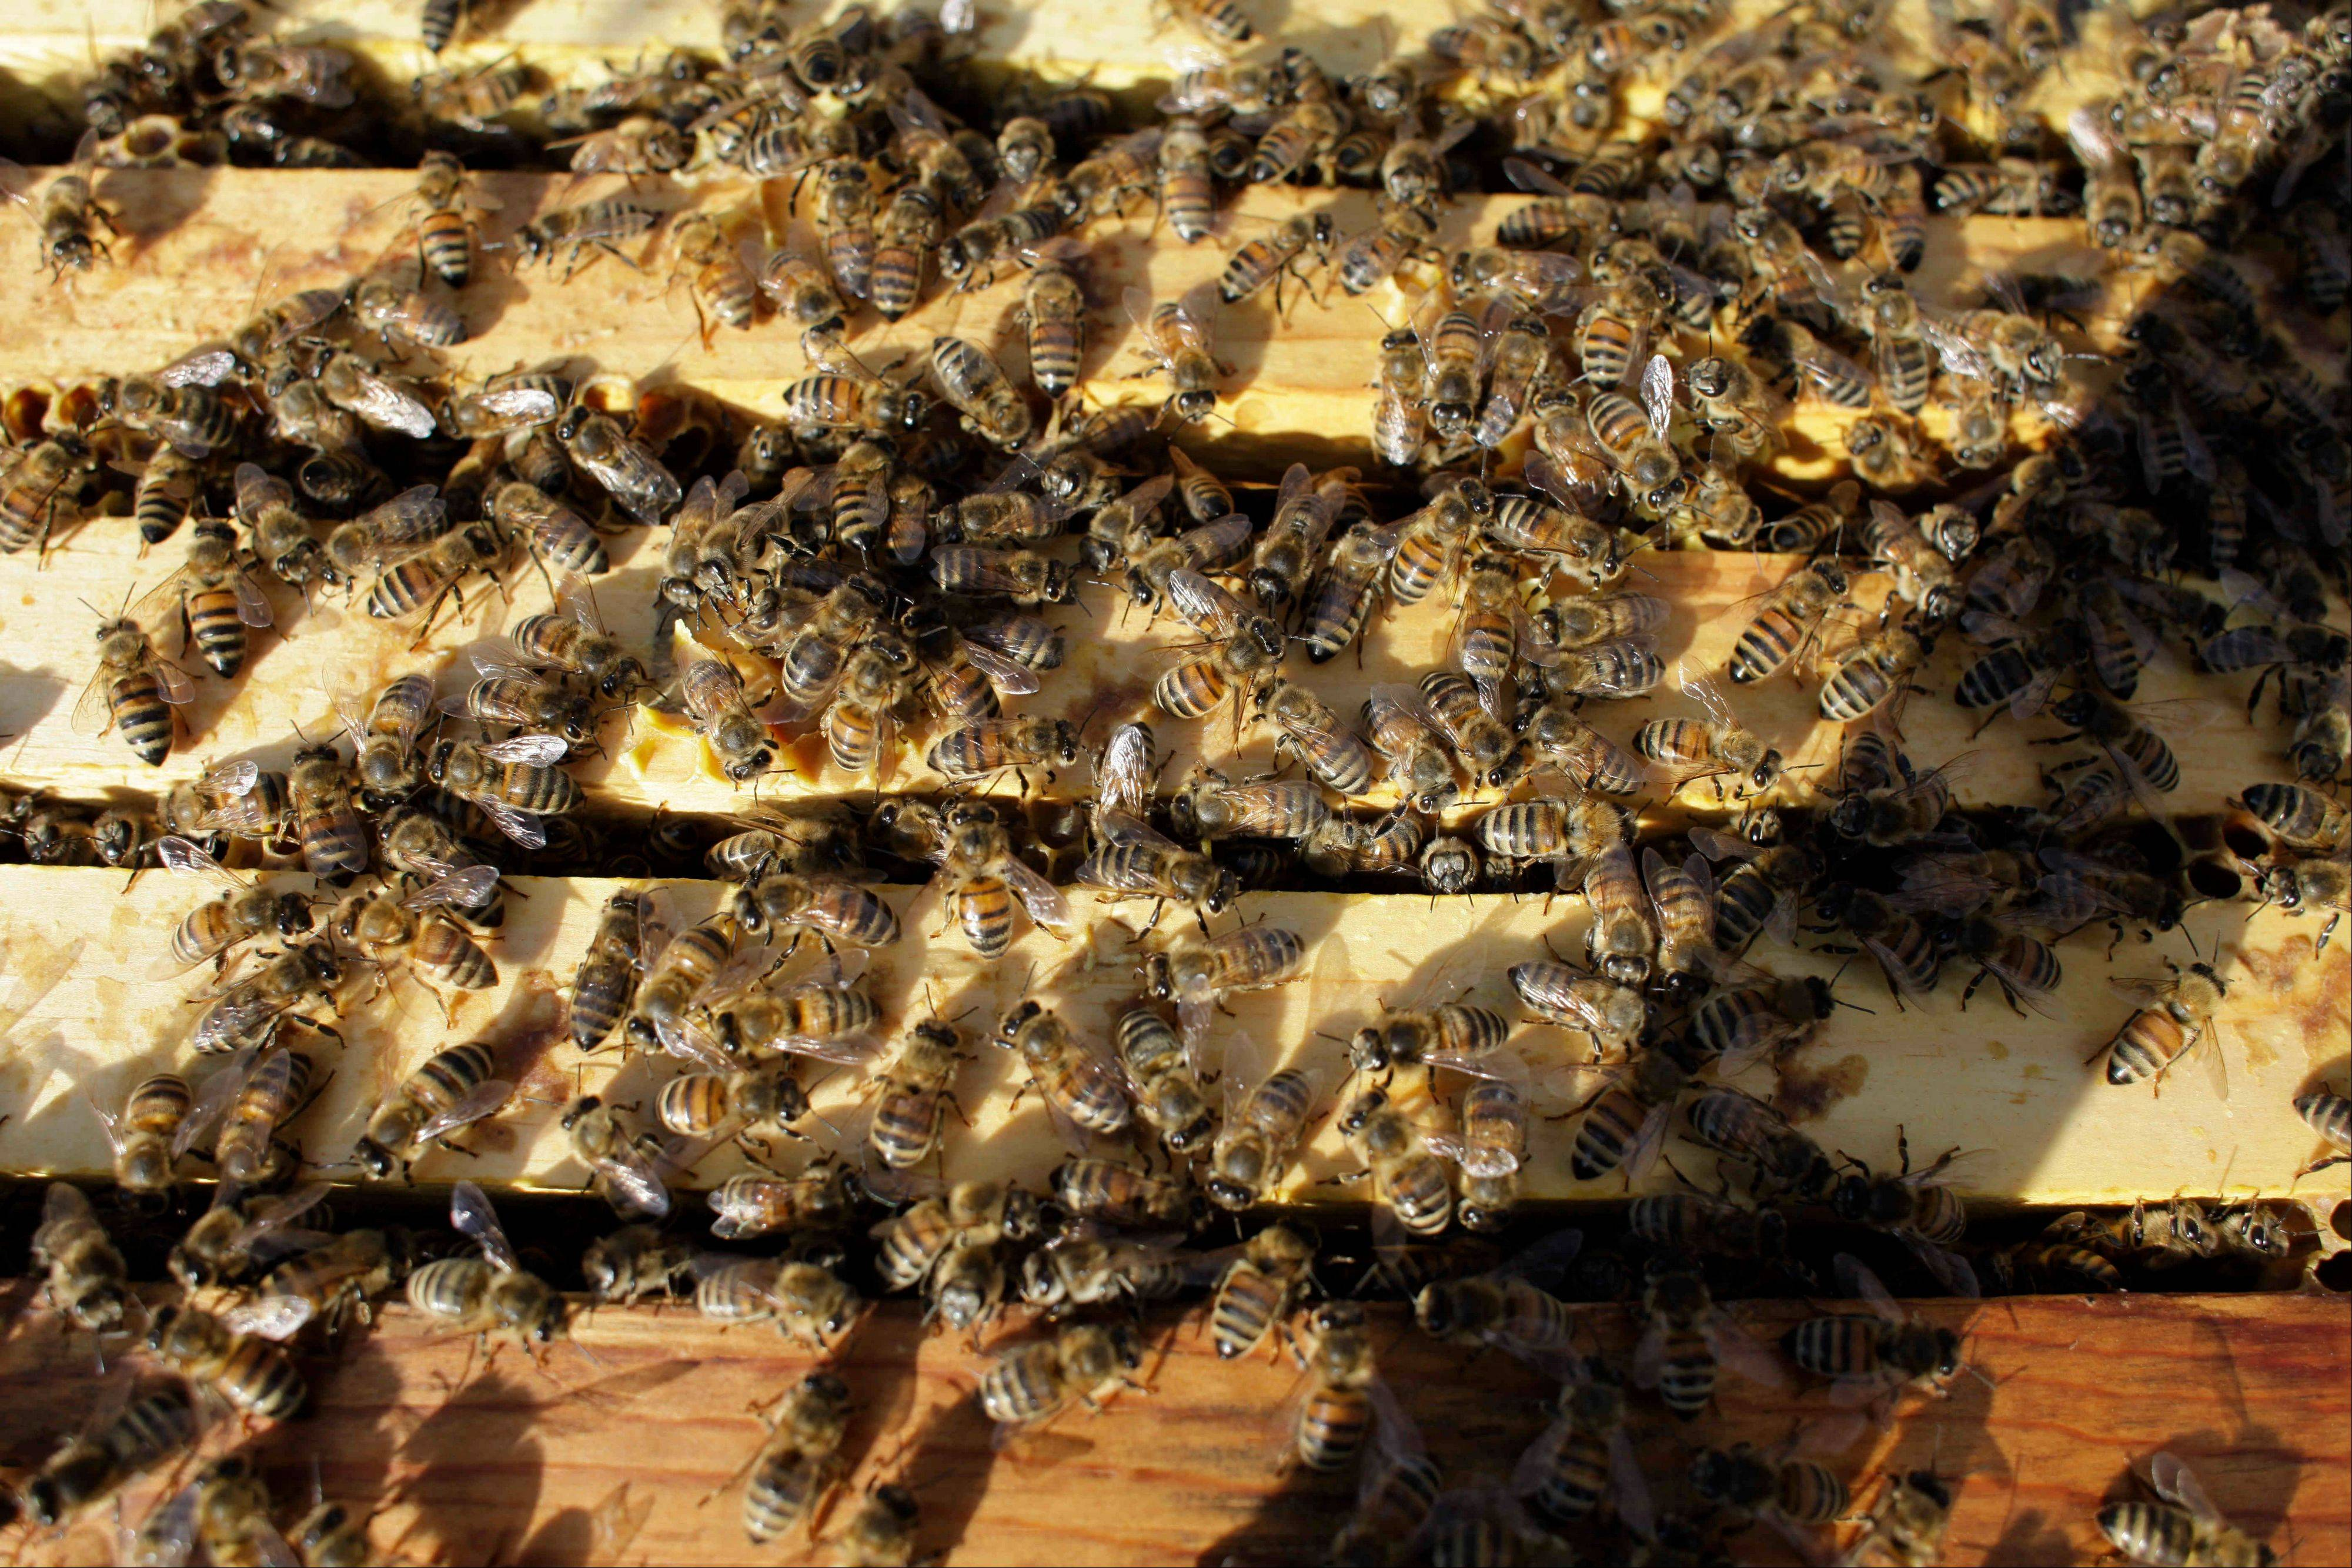 Honeybees cluster Tuesday on top of the frames of an opened hive in an almond orchard.